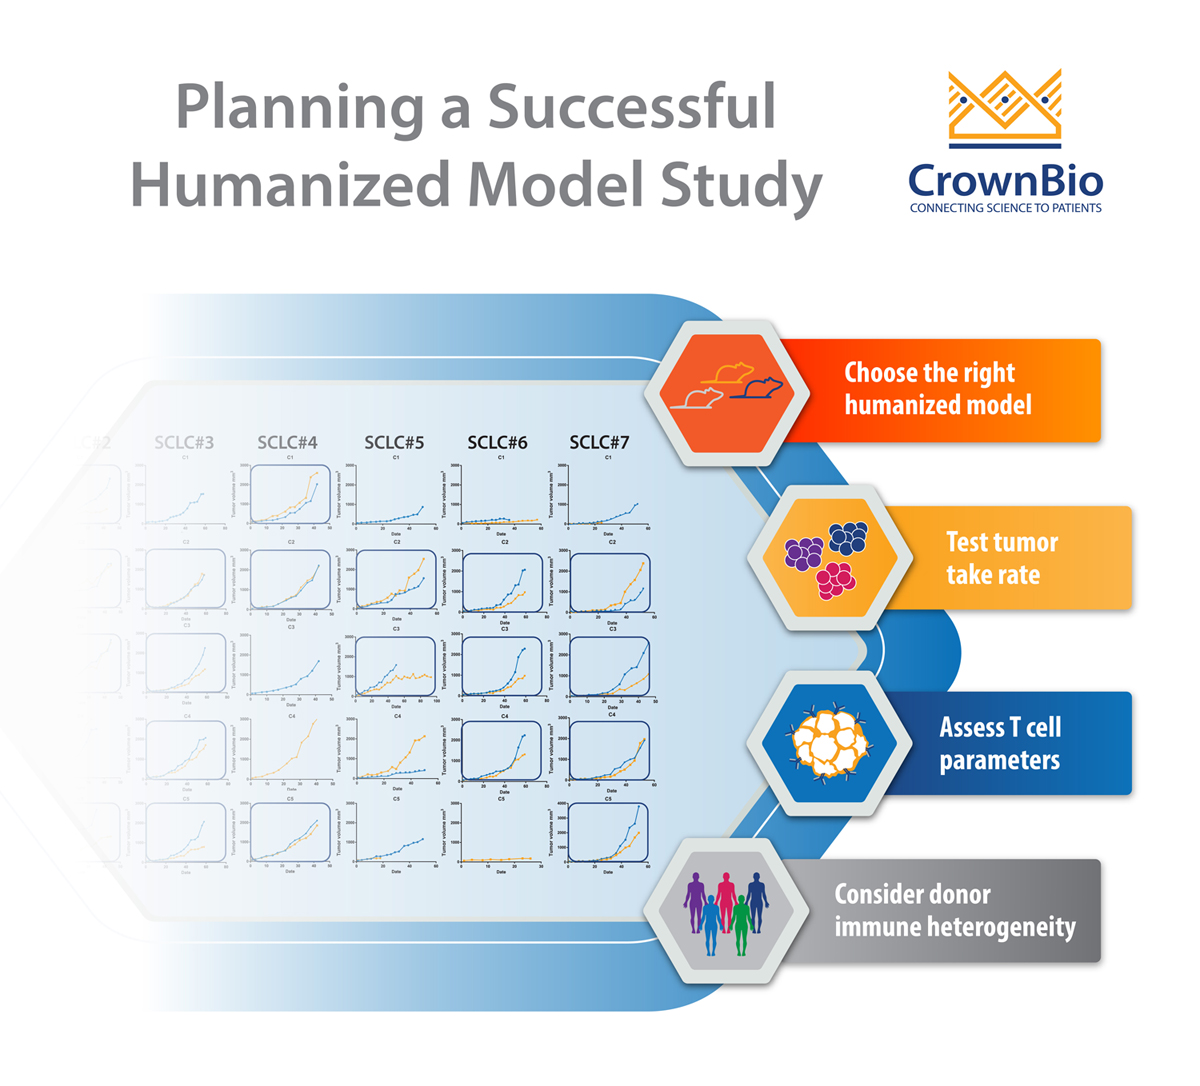 Designing HSC Humanized Model Efficacy Studies